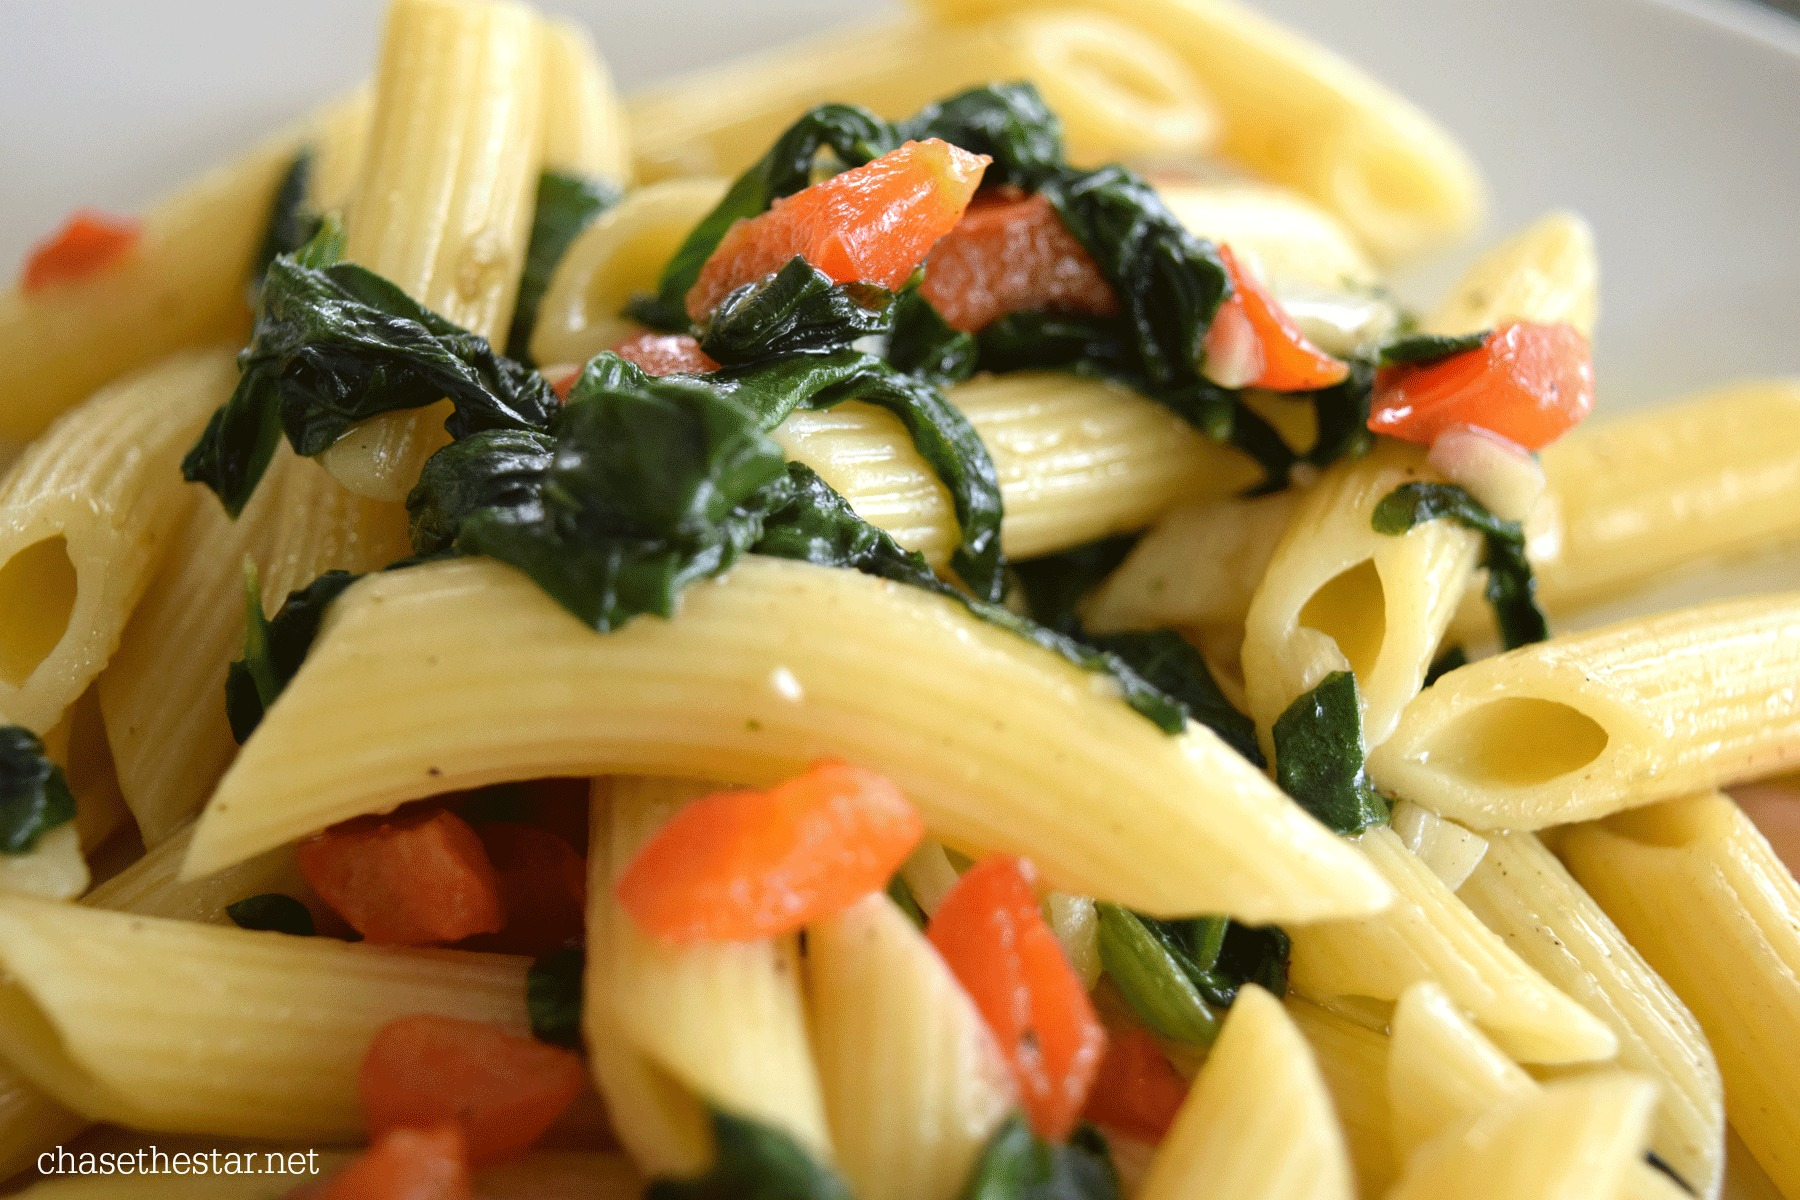 Mmmm! Roasted Garlic and Spinach with Penne via Chasethestar.net Barilla® #recipe